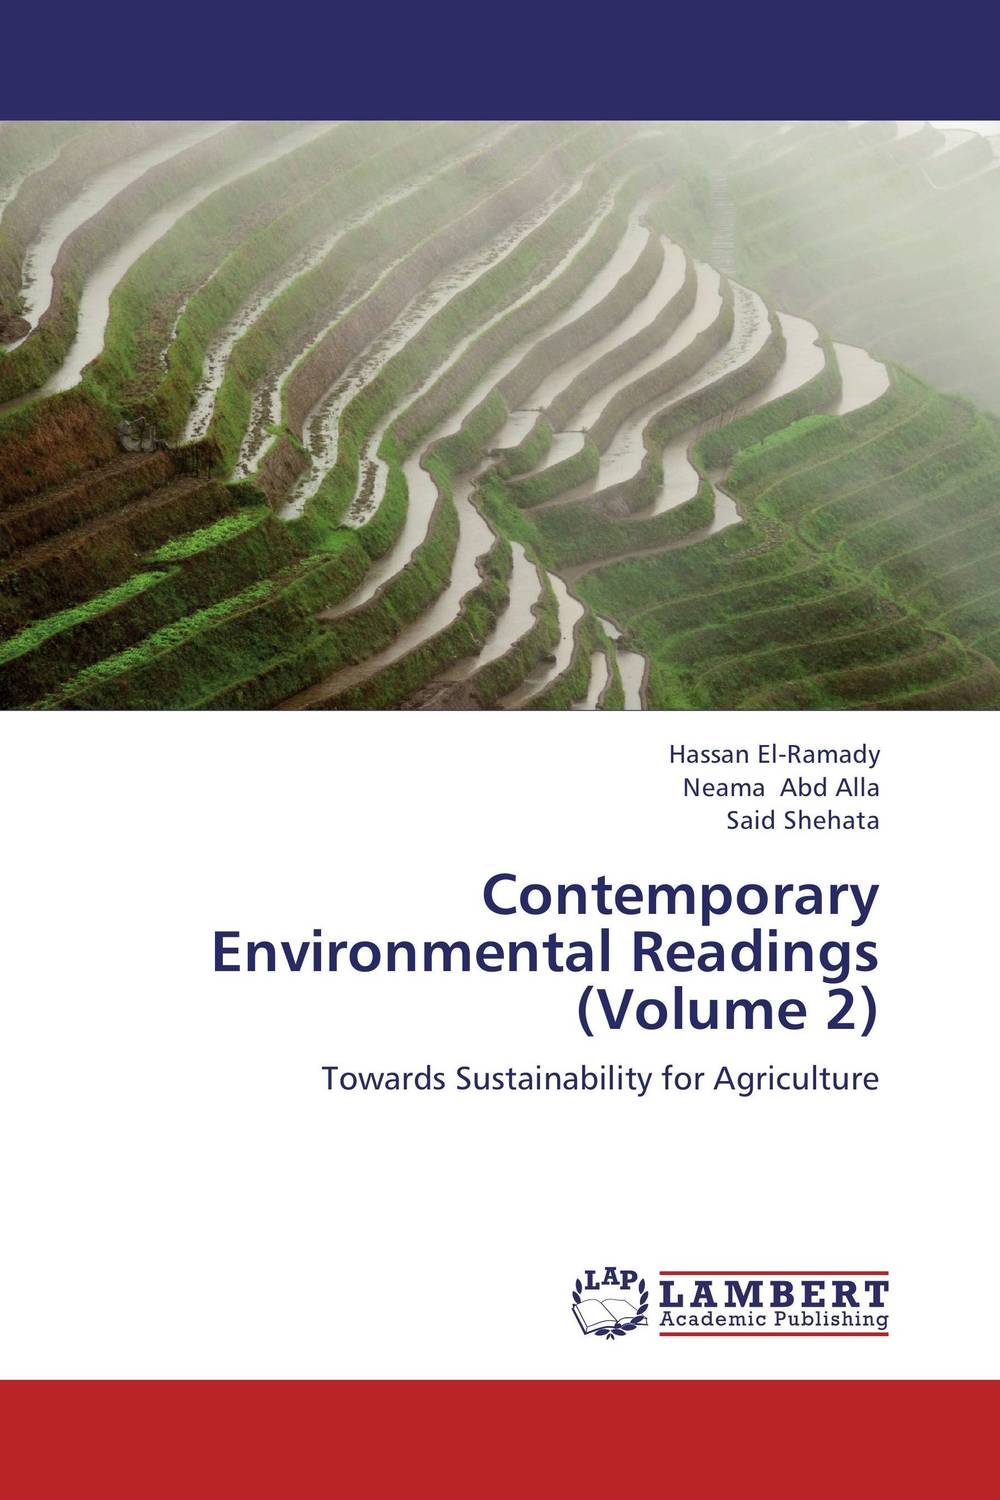 Contemporary Environmental Readings (Volume 2) bride of the water god volume 15